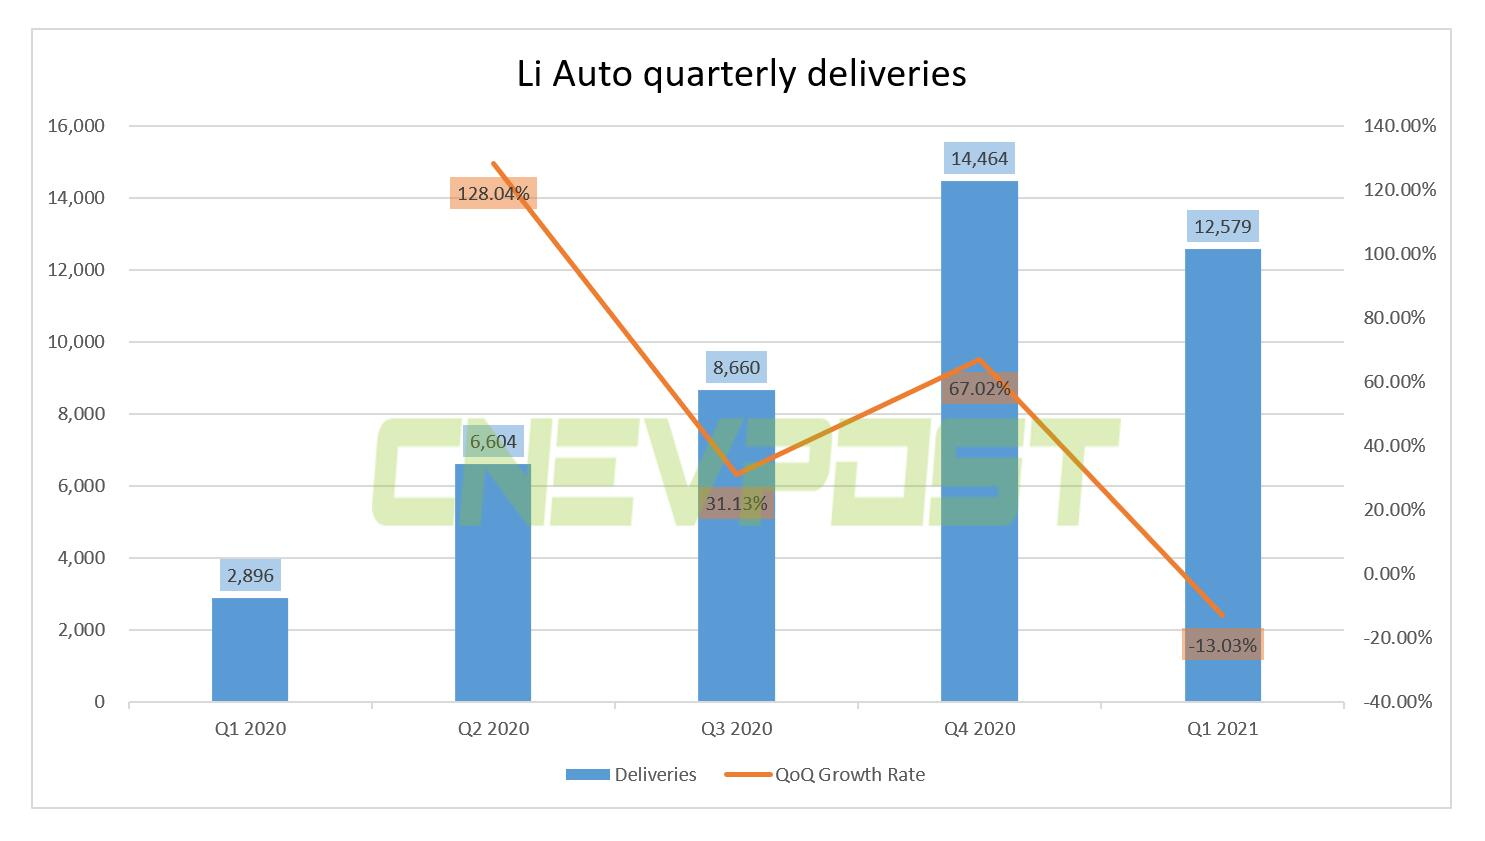 Li Auto to report Q1 earnings on May 26, delivered 12,579 vehicles in the quarter-CnEVPost